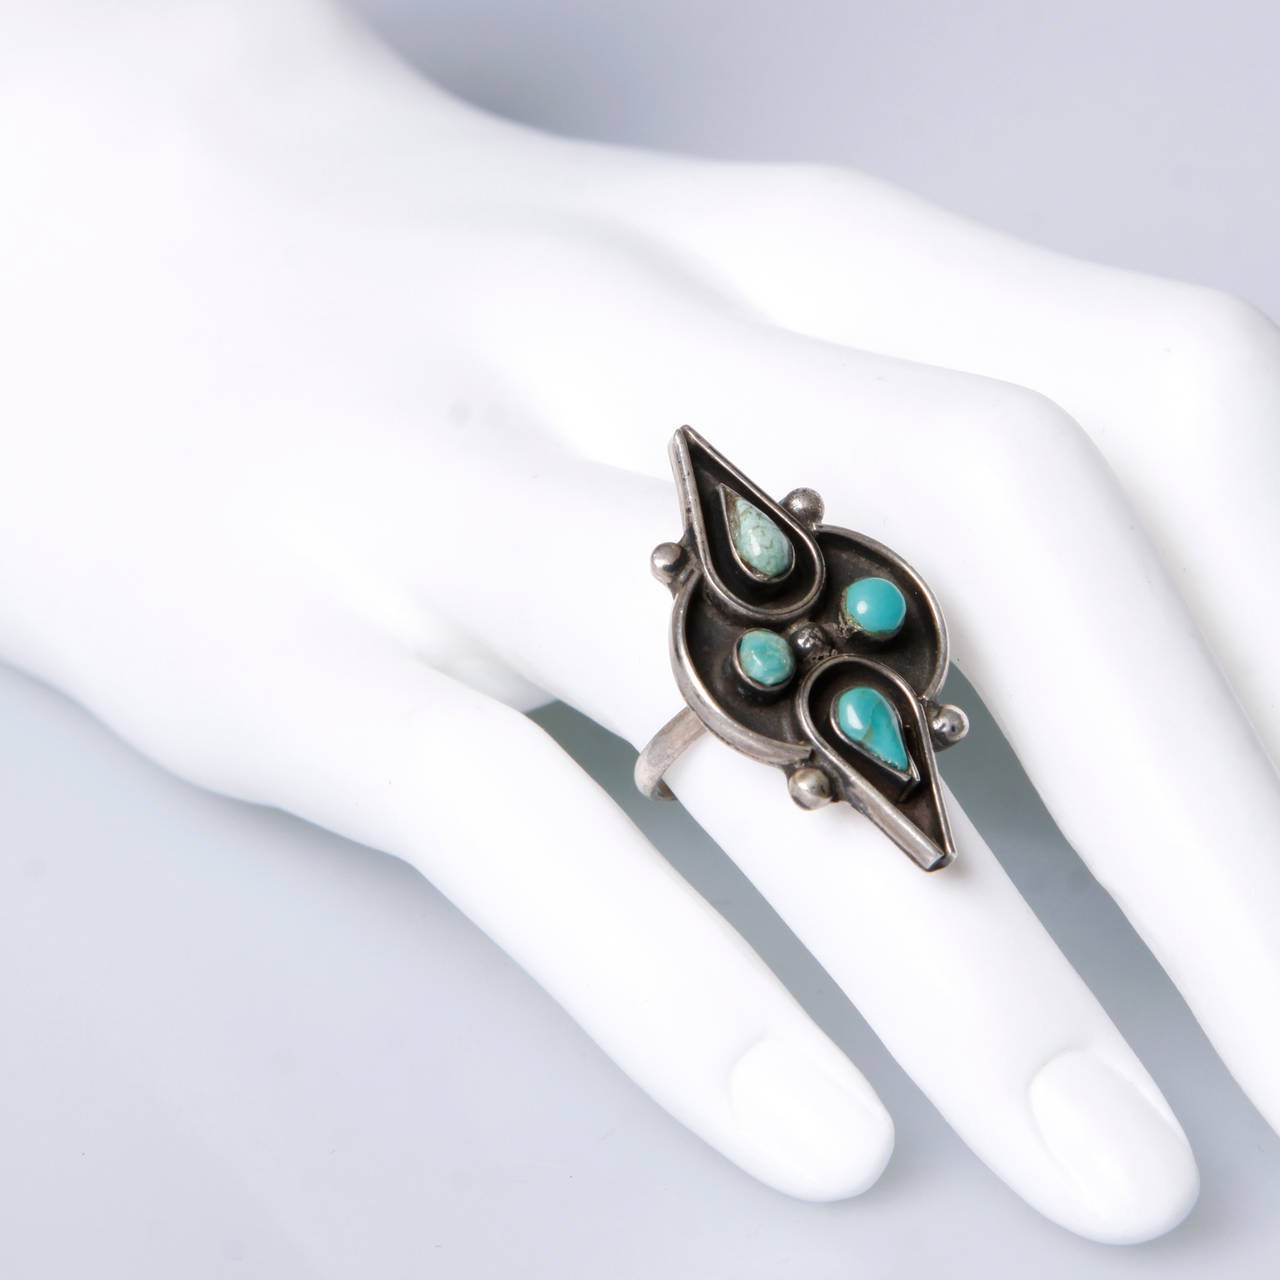 1970s Native American Turquoise Sterling Silver Band Ring Size 7 2